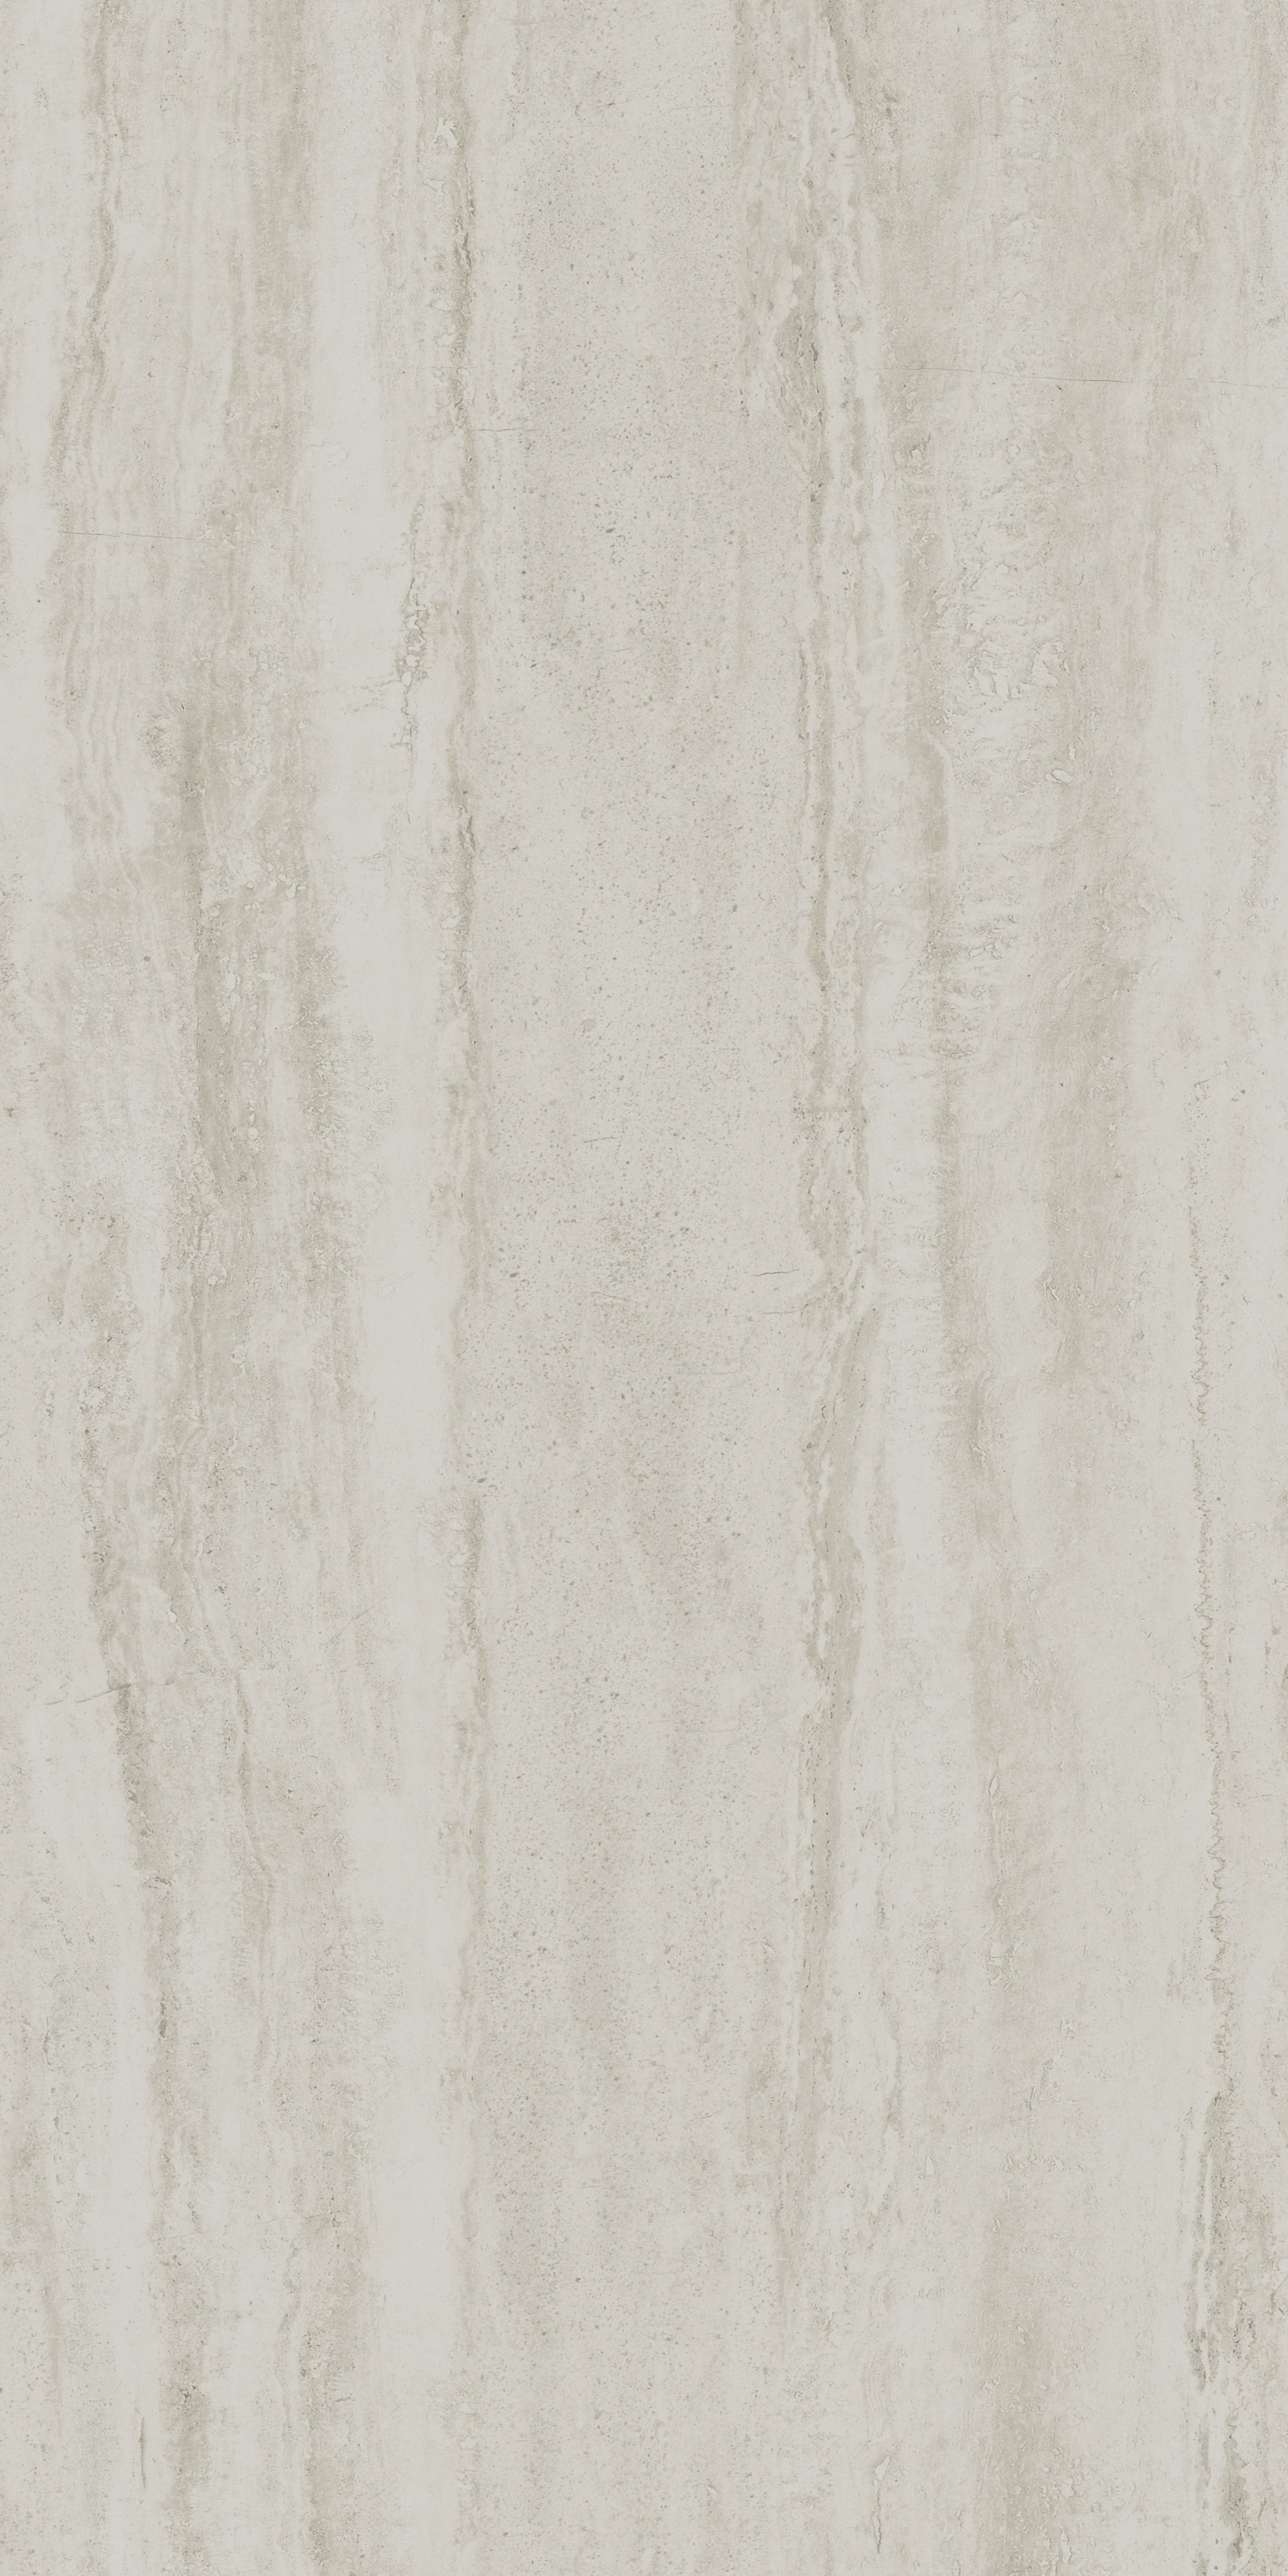 Anatolia Ivory Stone Effect Plain Porcelain Wall & Floor Tile, Pack Of 6, (l)600mm (w)300mm